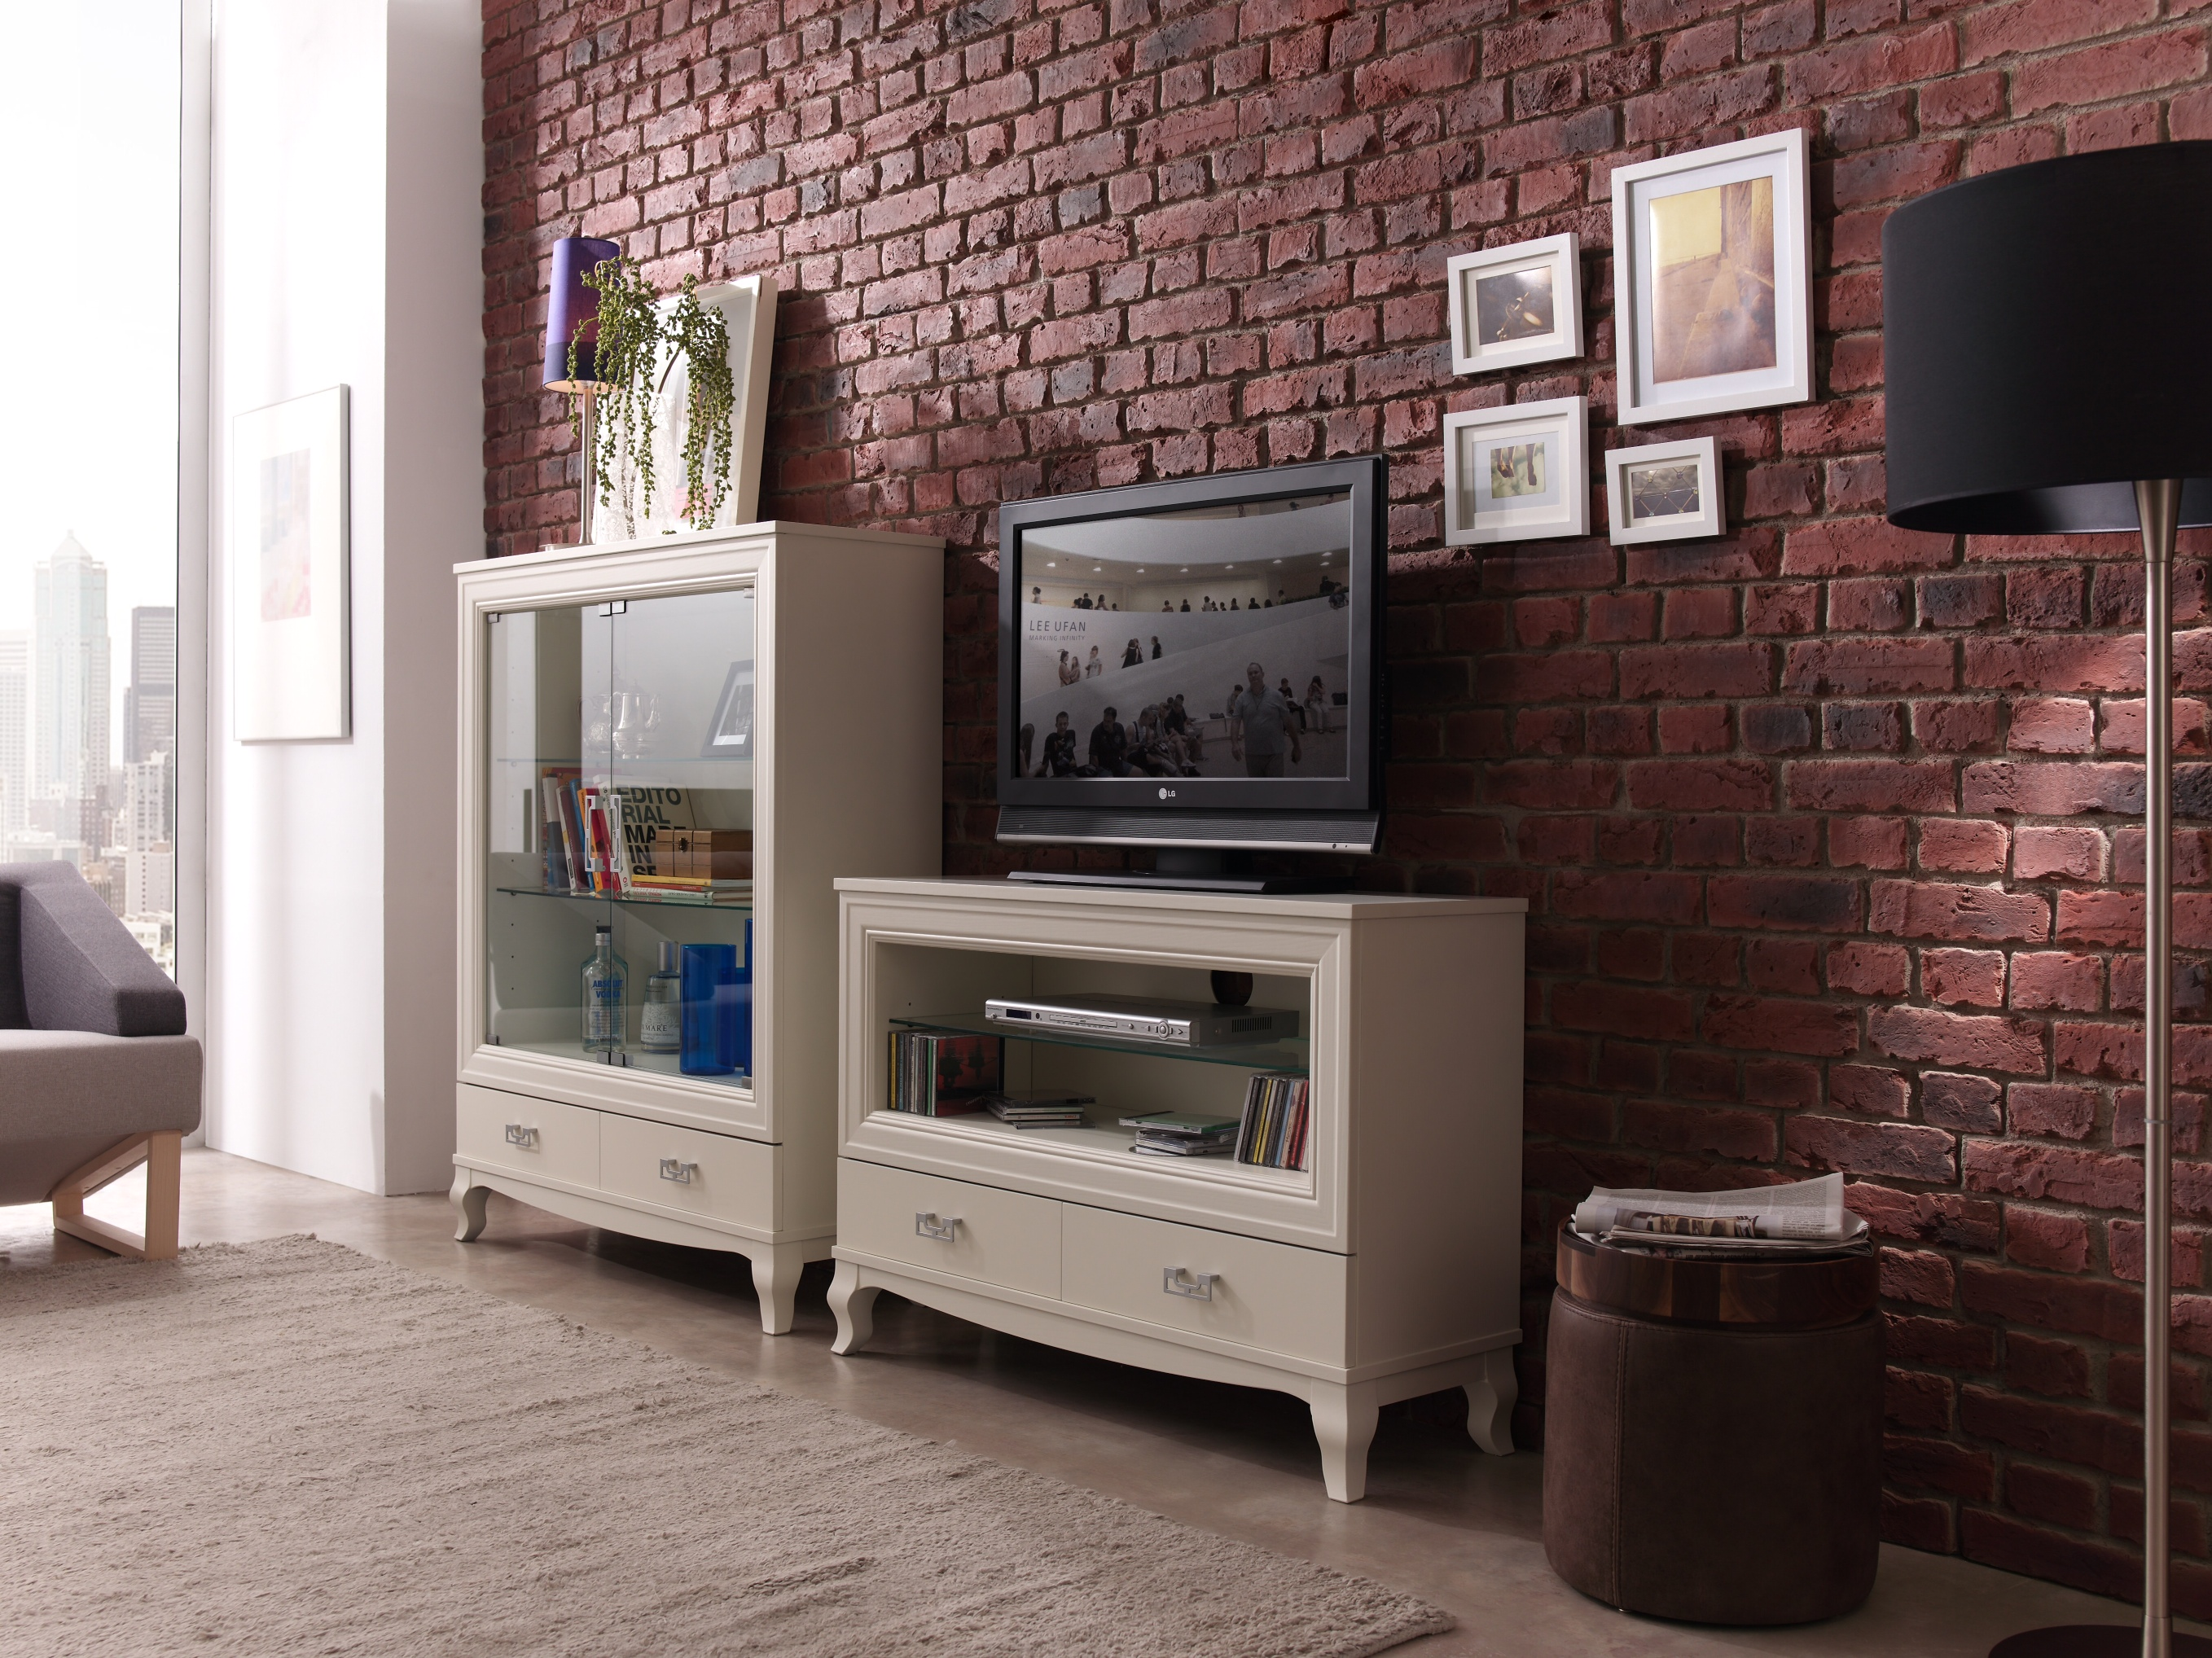 faux brick dreamwall wallcoverings with a difference leaders in faux brick walls. Black Bedroom Furniture Sets. Home Design Ideas